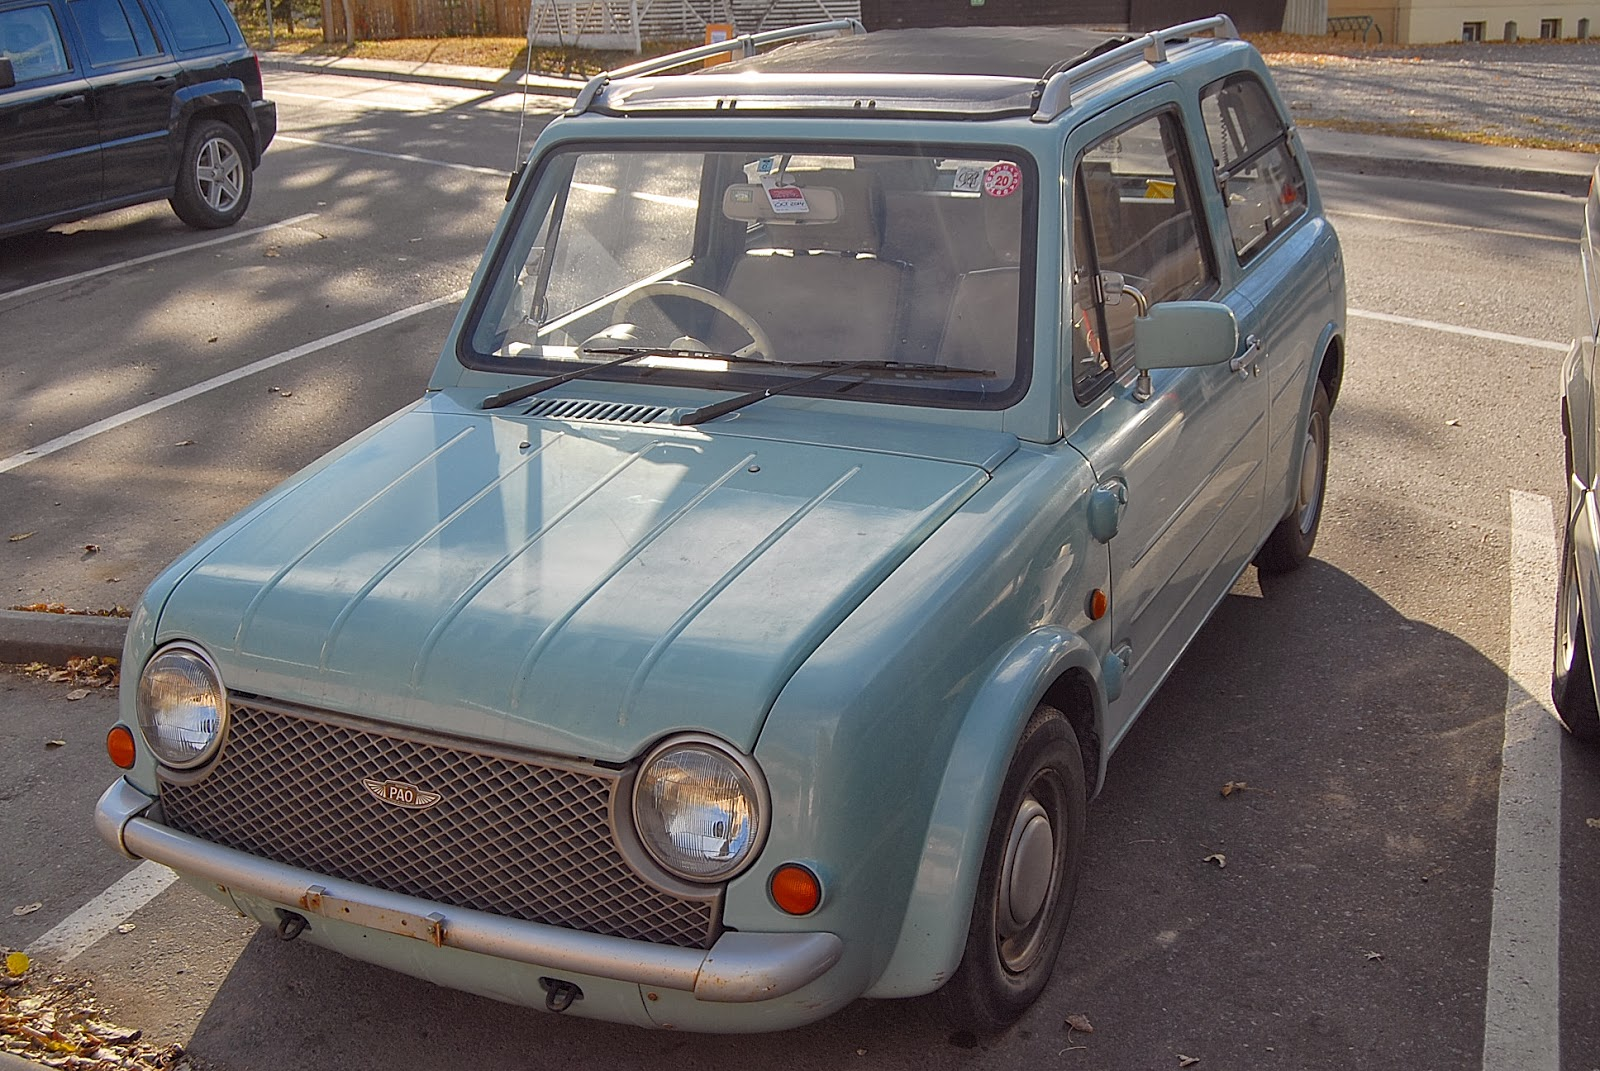 autoliterate: the Japanese retro-car: Nissan Pao